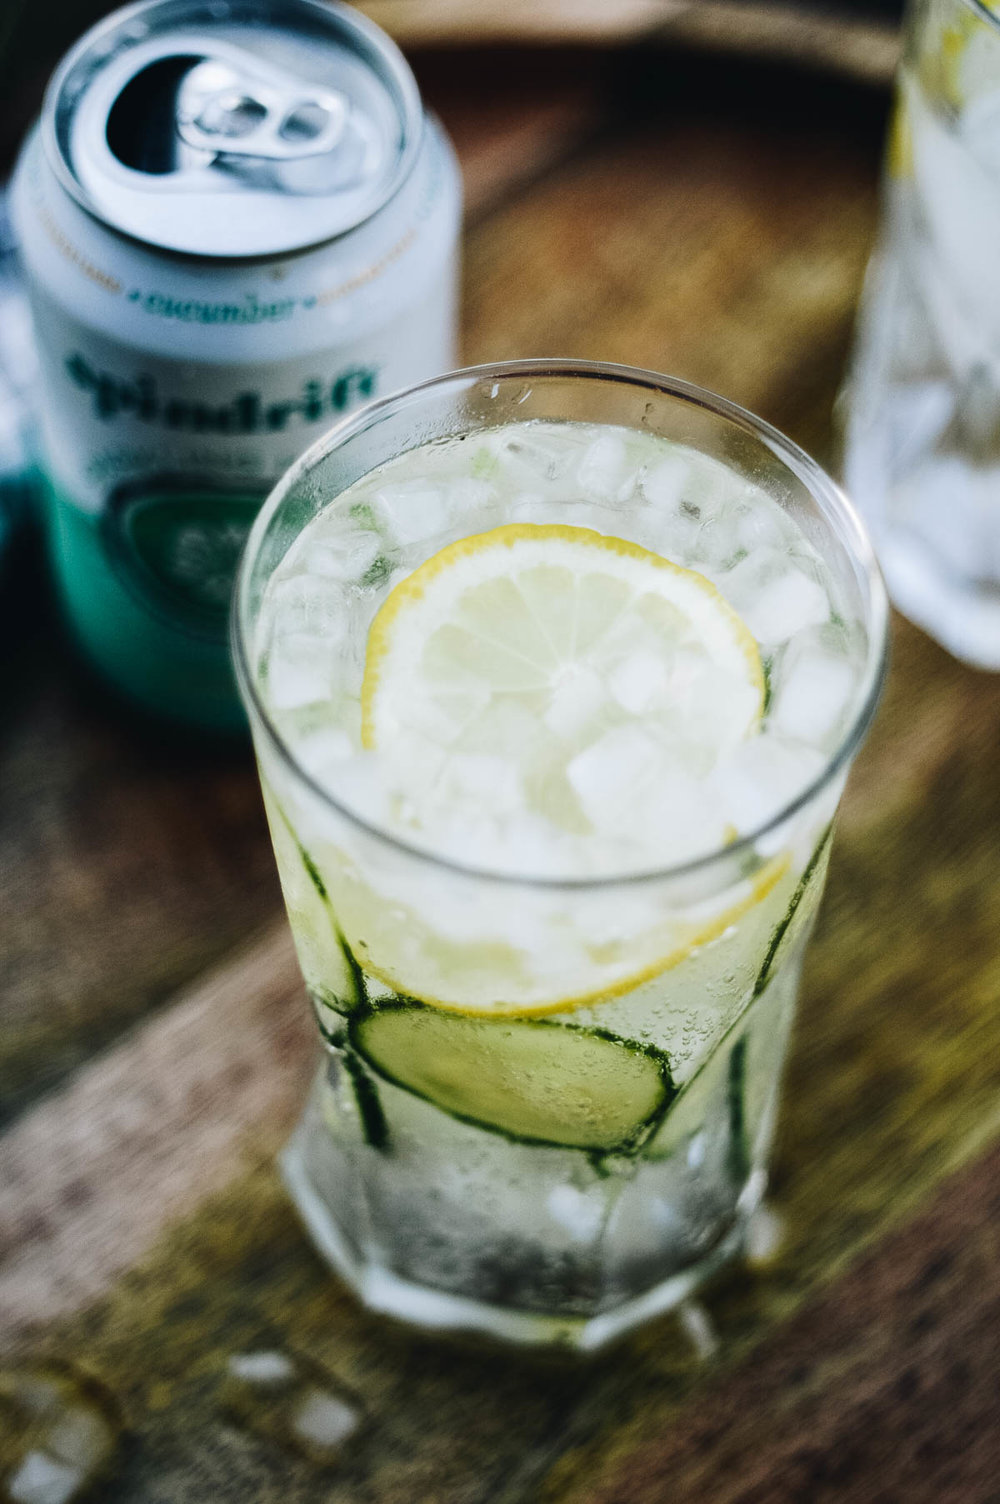 Classic Cucumber Collins with Sprindrift via. www.birdieshoots.com